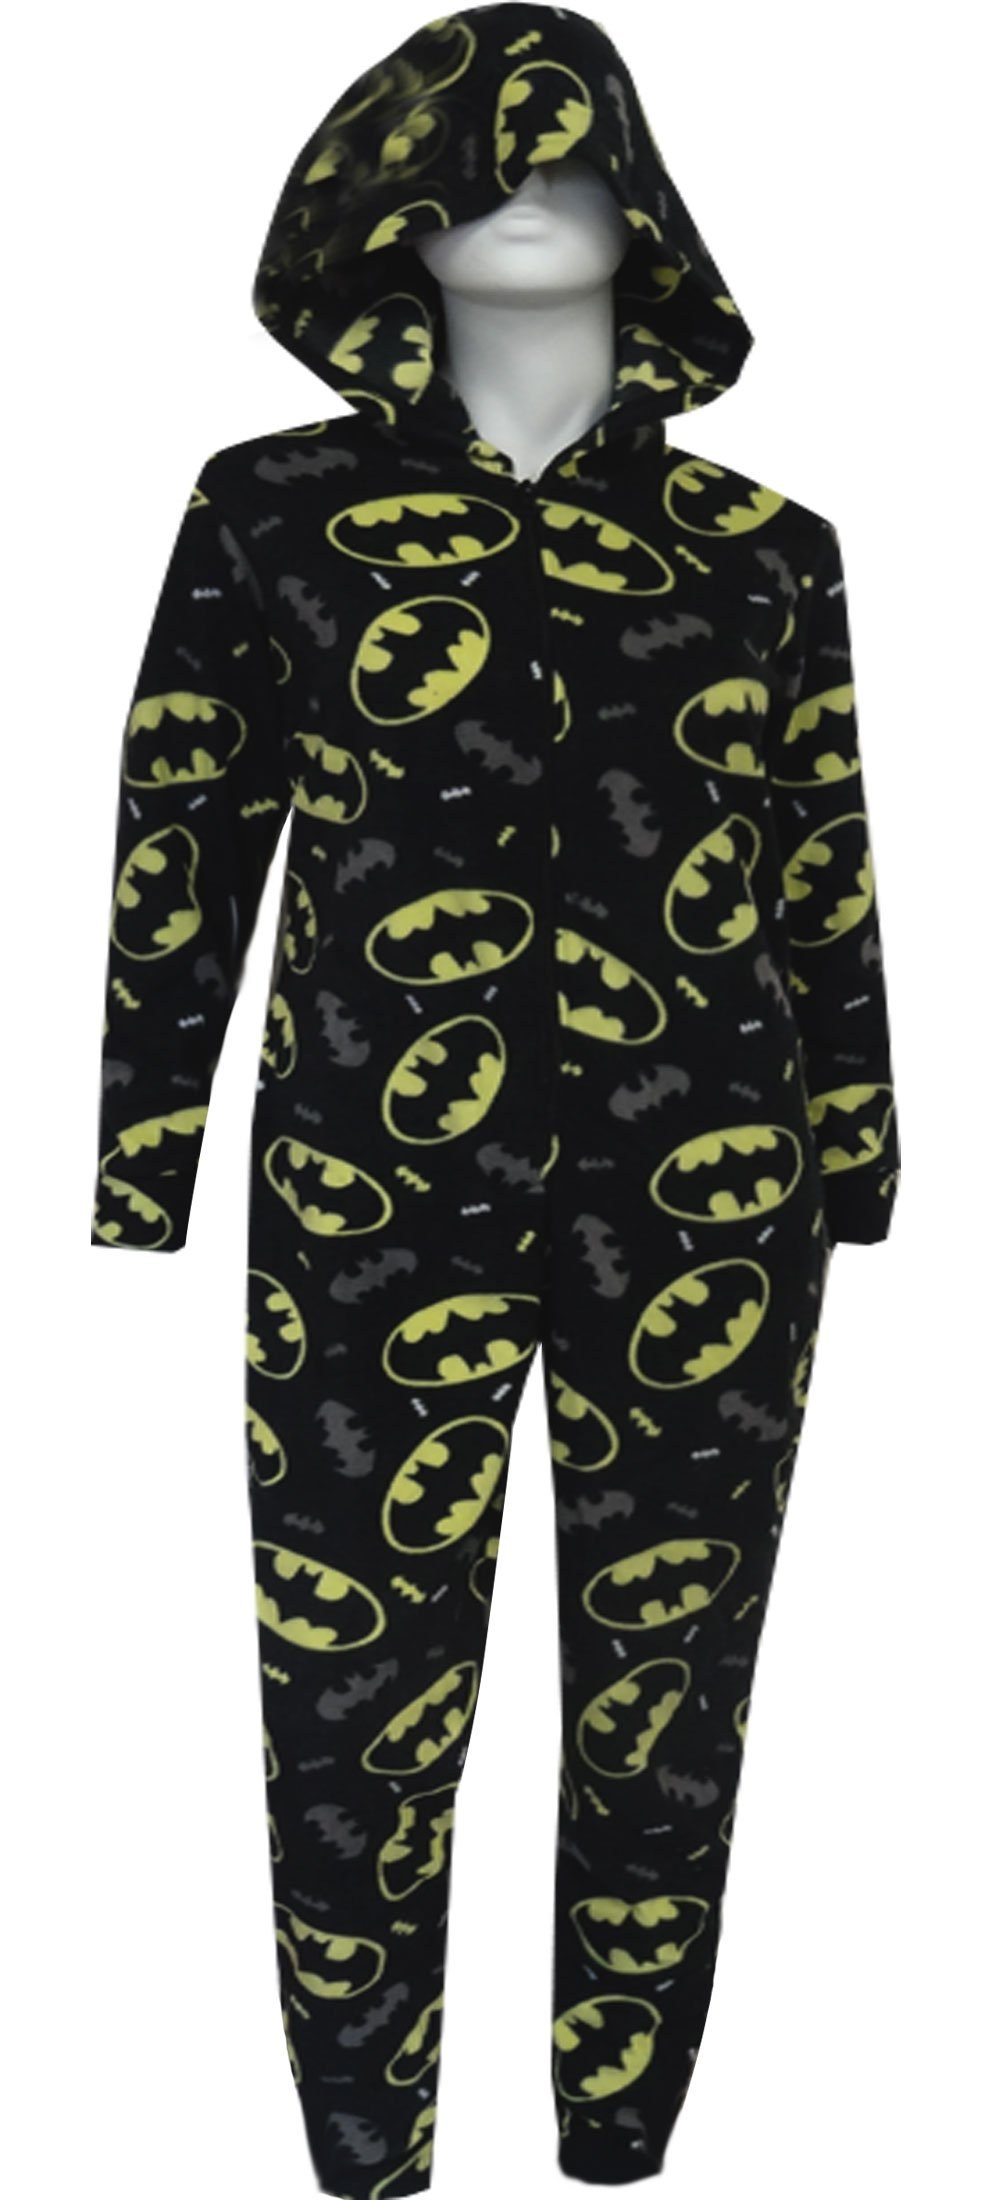 Find great deals on eBay for adult footed pajamas batman. Shop with confidence.